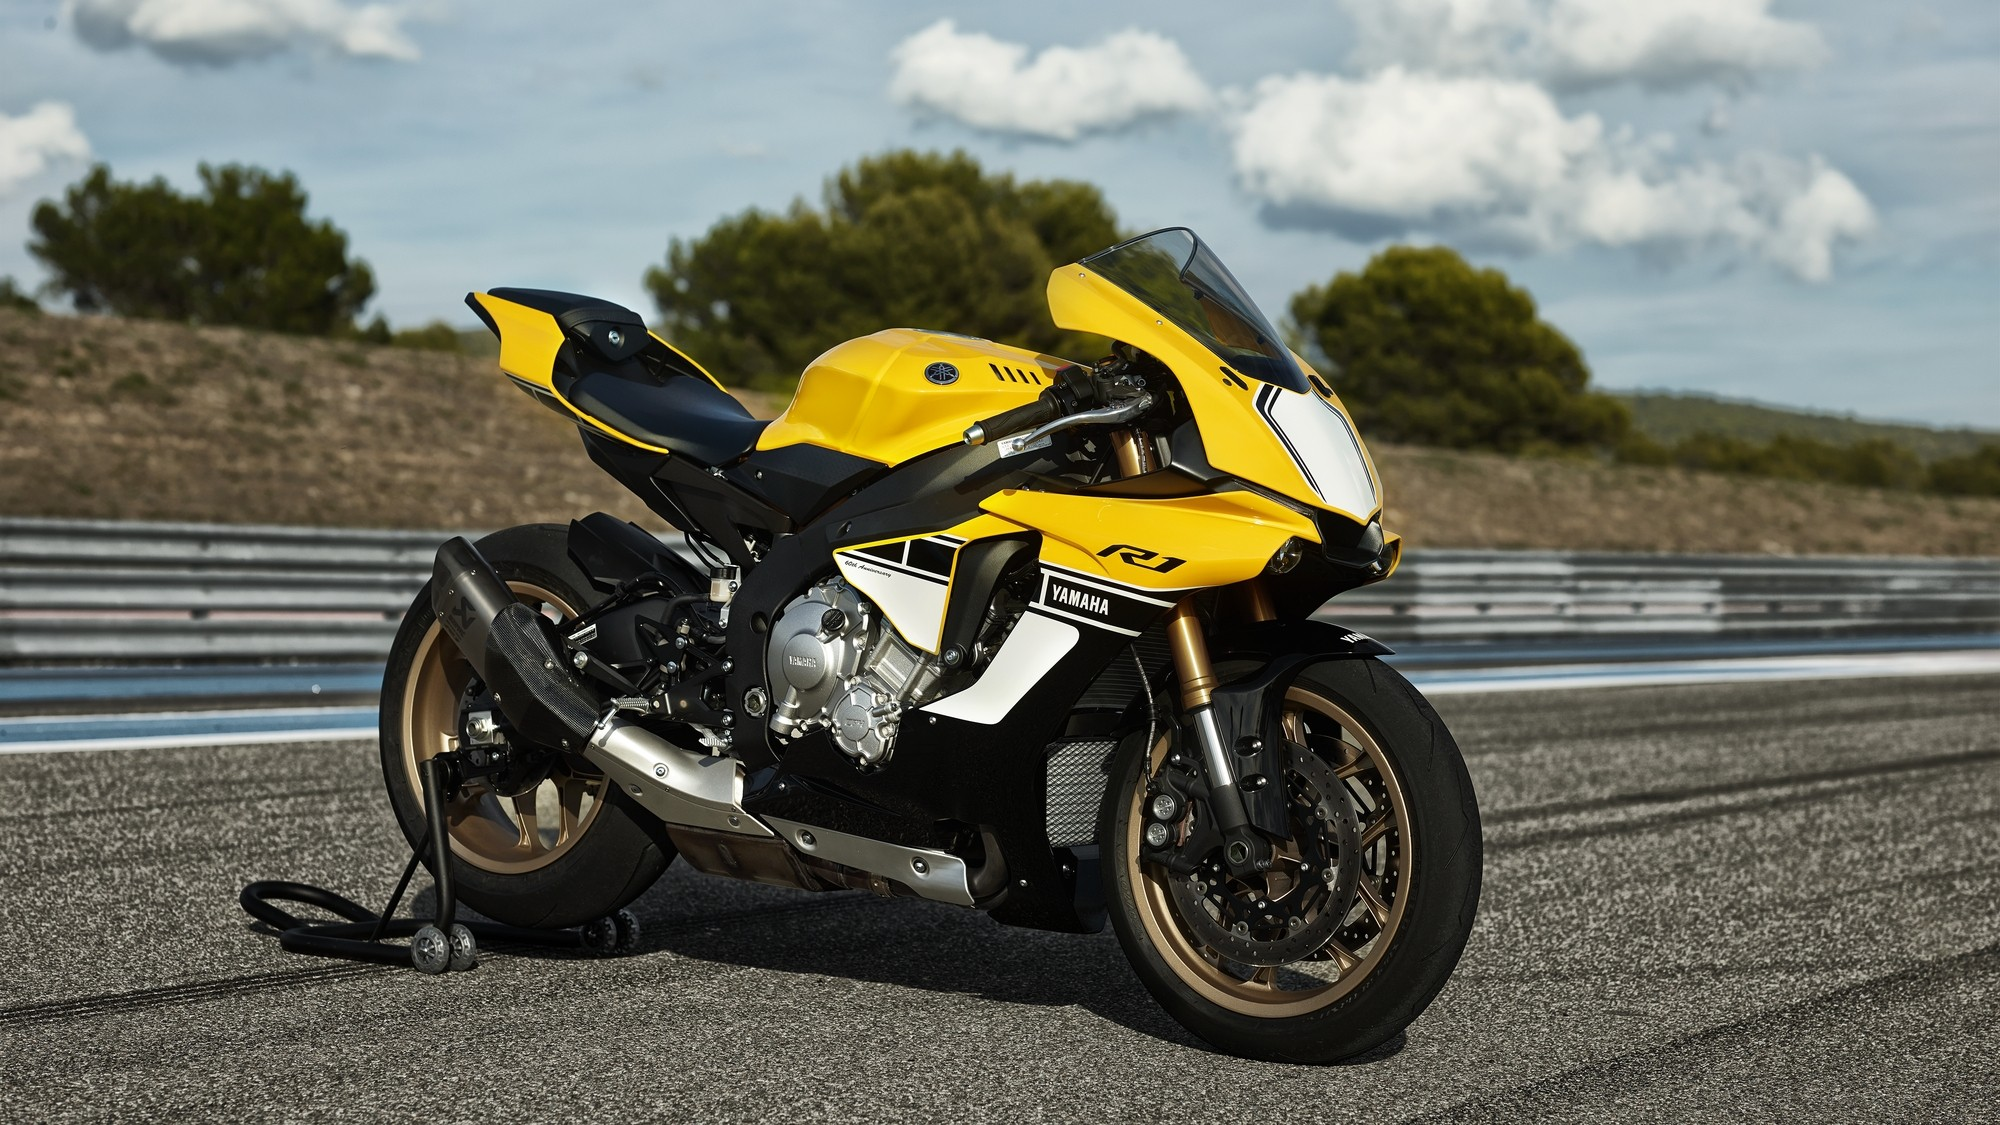 yamaha yzf r1 60th anniversary edition shows a timeless yellow black  kawasaki zx12 kawasaki r1 diagram